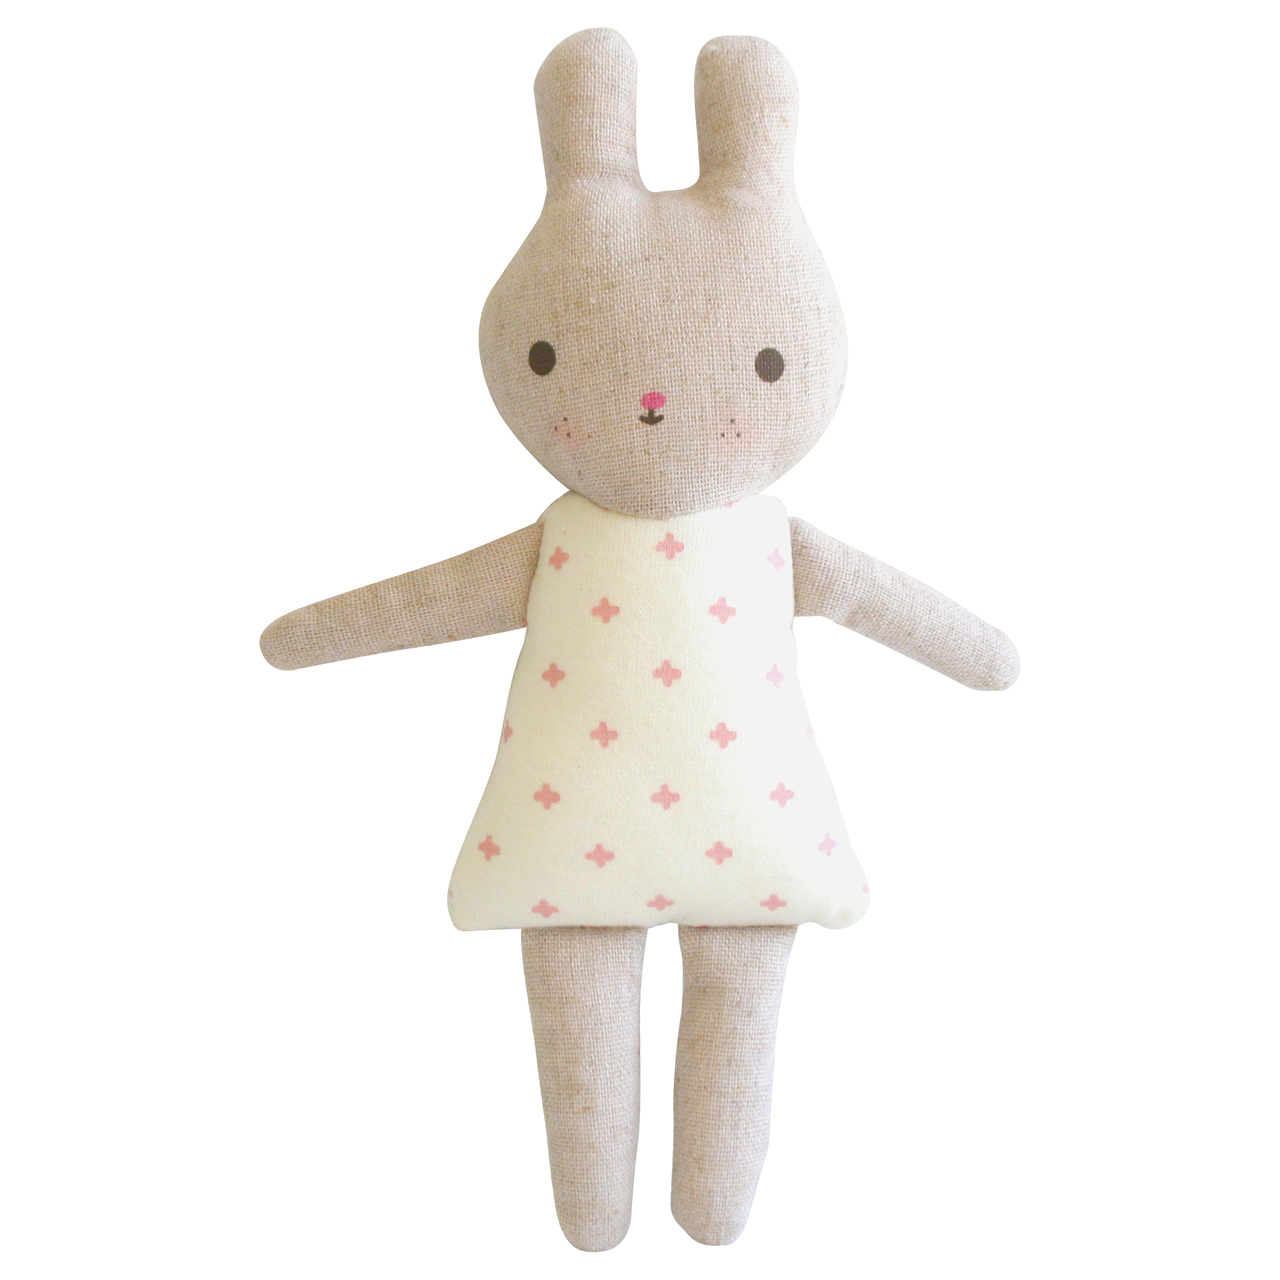 Bonnie Bunny rattle in Pink 19cm By Alimrose